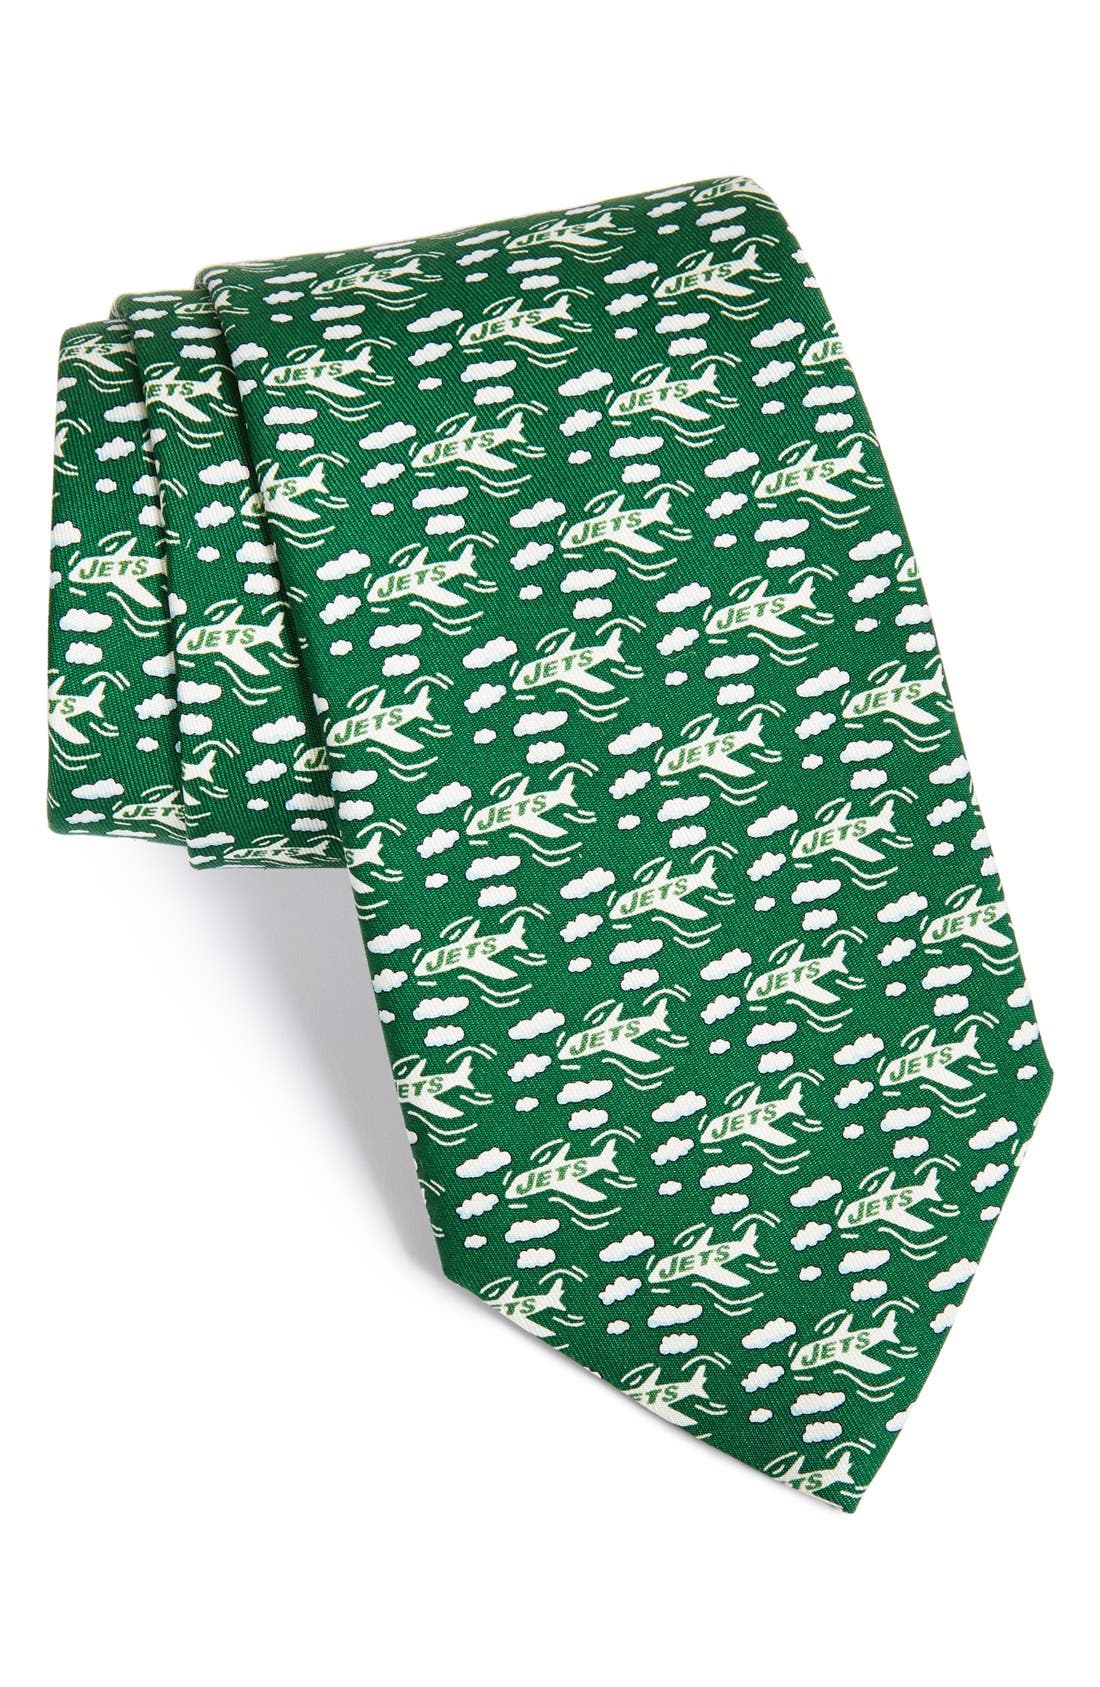 New York Jets - NFL Woven Silk Tie,                         Main,                         color,